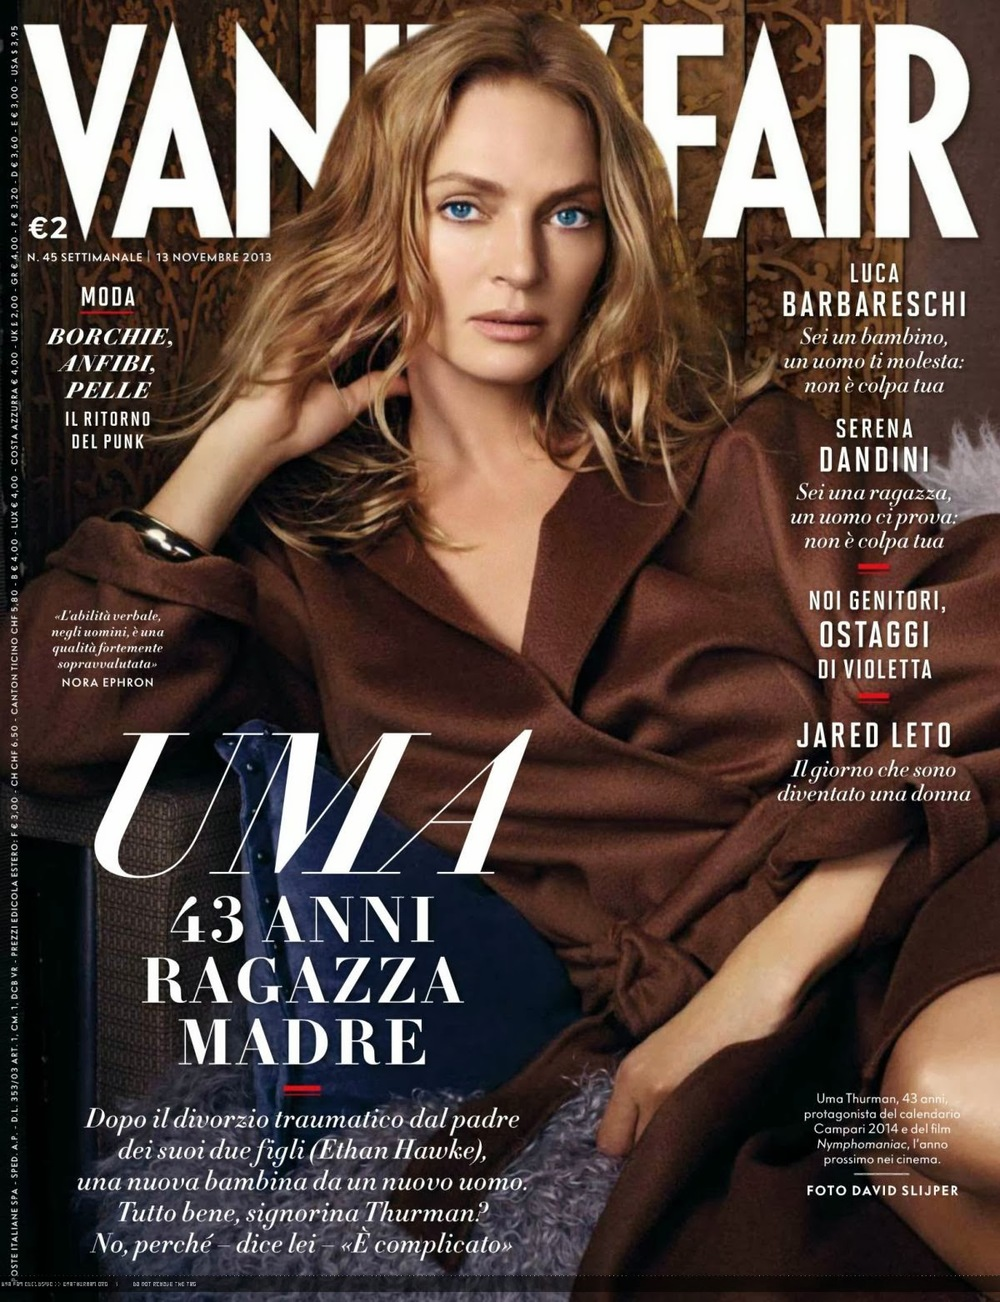 Uma Thurman - Vanity Fair Italy Nov 2013 1.jpg